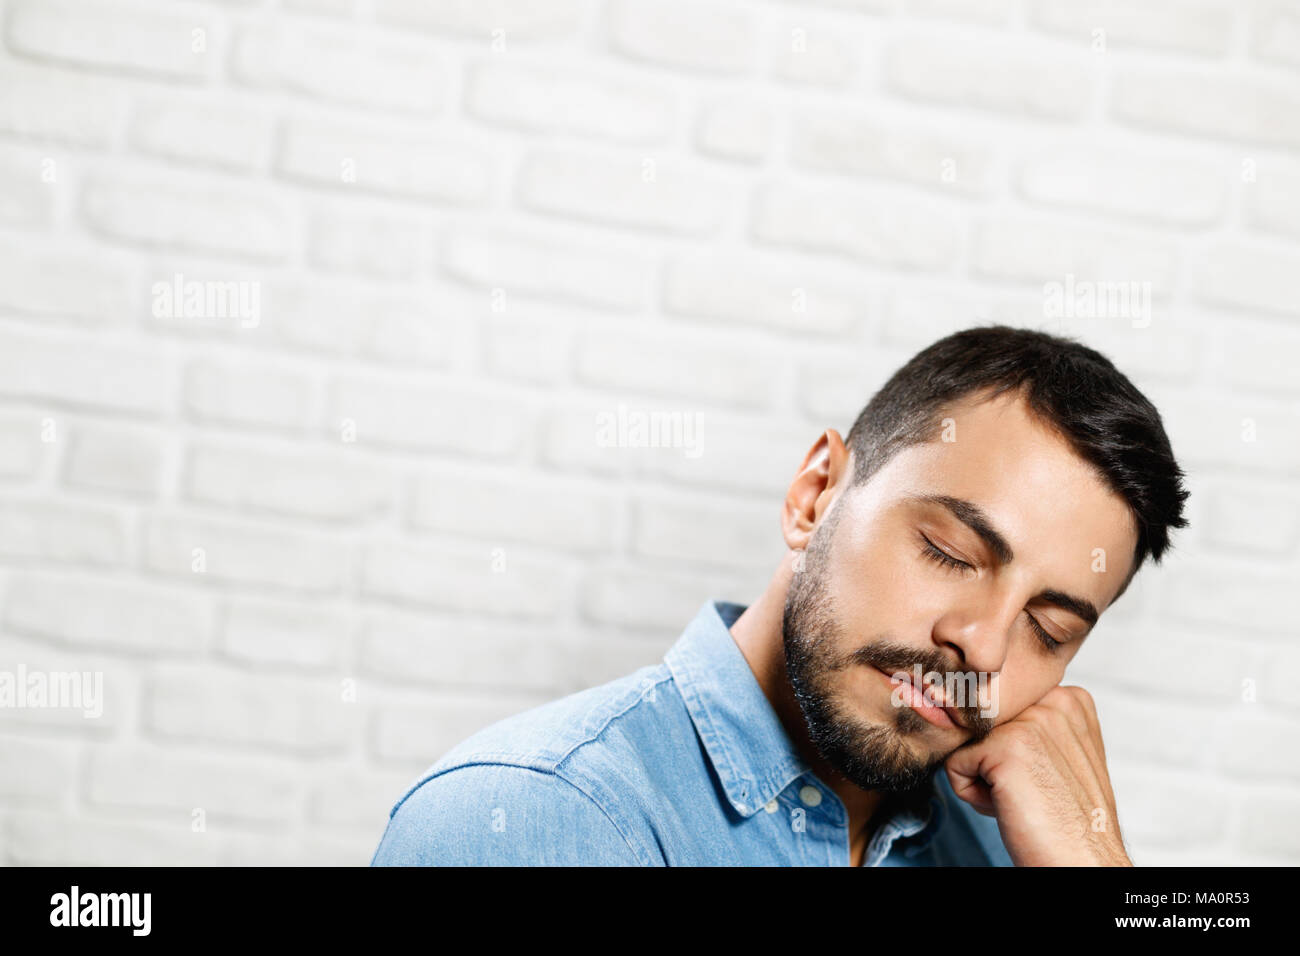 Portrait of man looking at camera. Tired Italian man yawning and doing hand gestures for concept of sleeping. - Stock Image